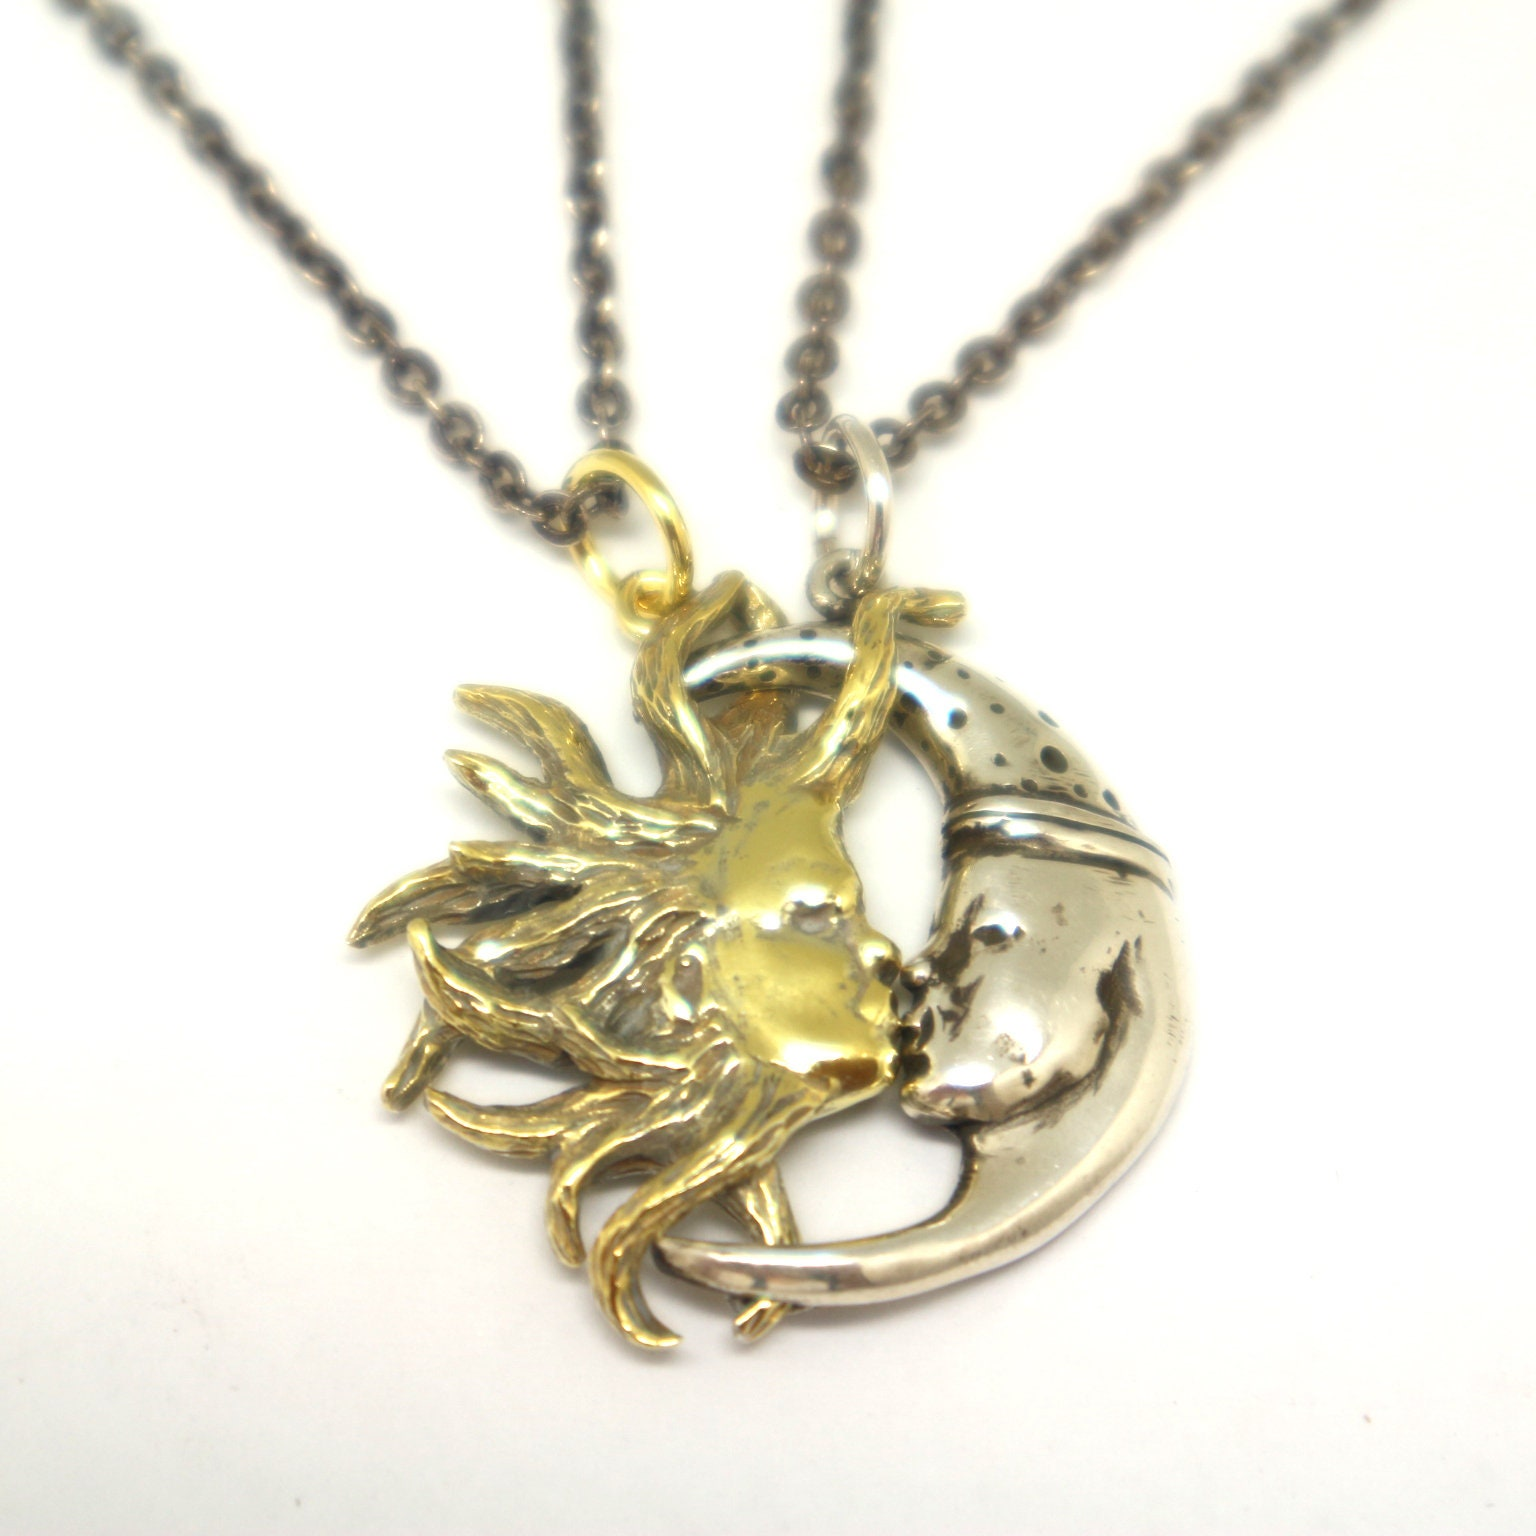 f6094a2b41 Silver Sun and Moon Couple Necklaces Sun and Moon Jewelry   Etsy